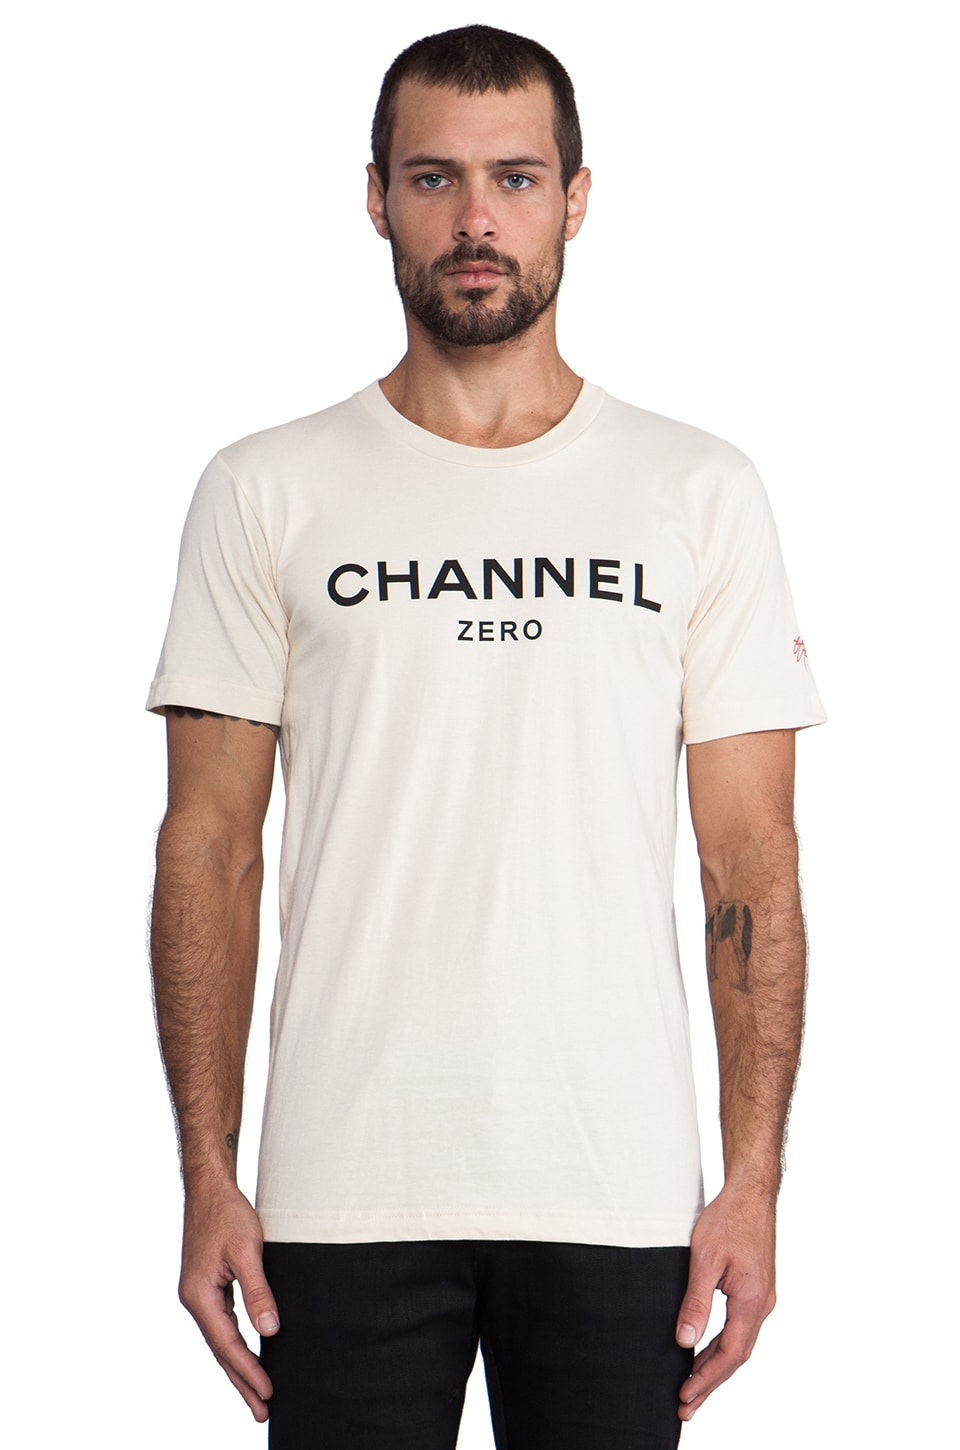 SSUR Channel Zero Tee in Black/Cream